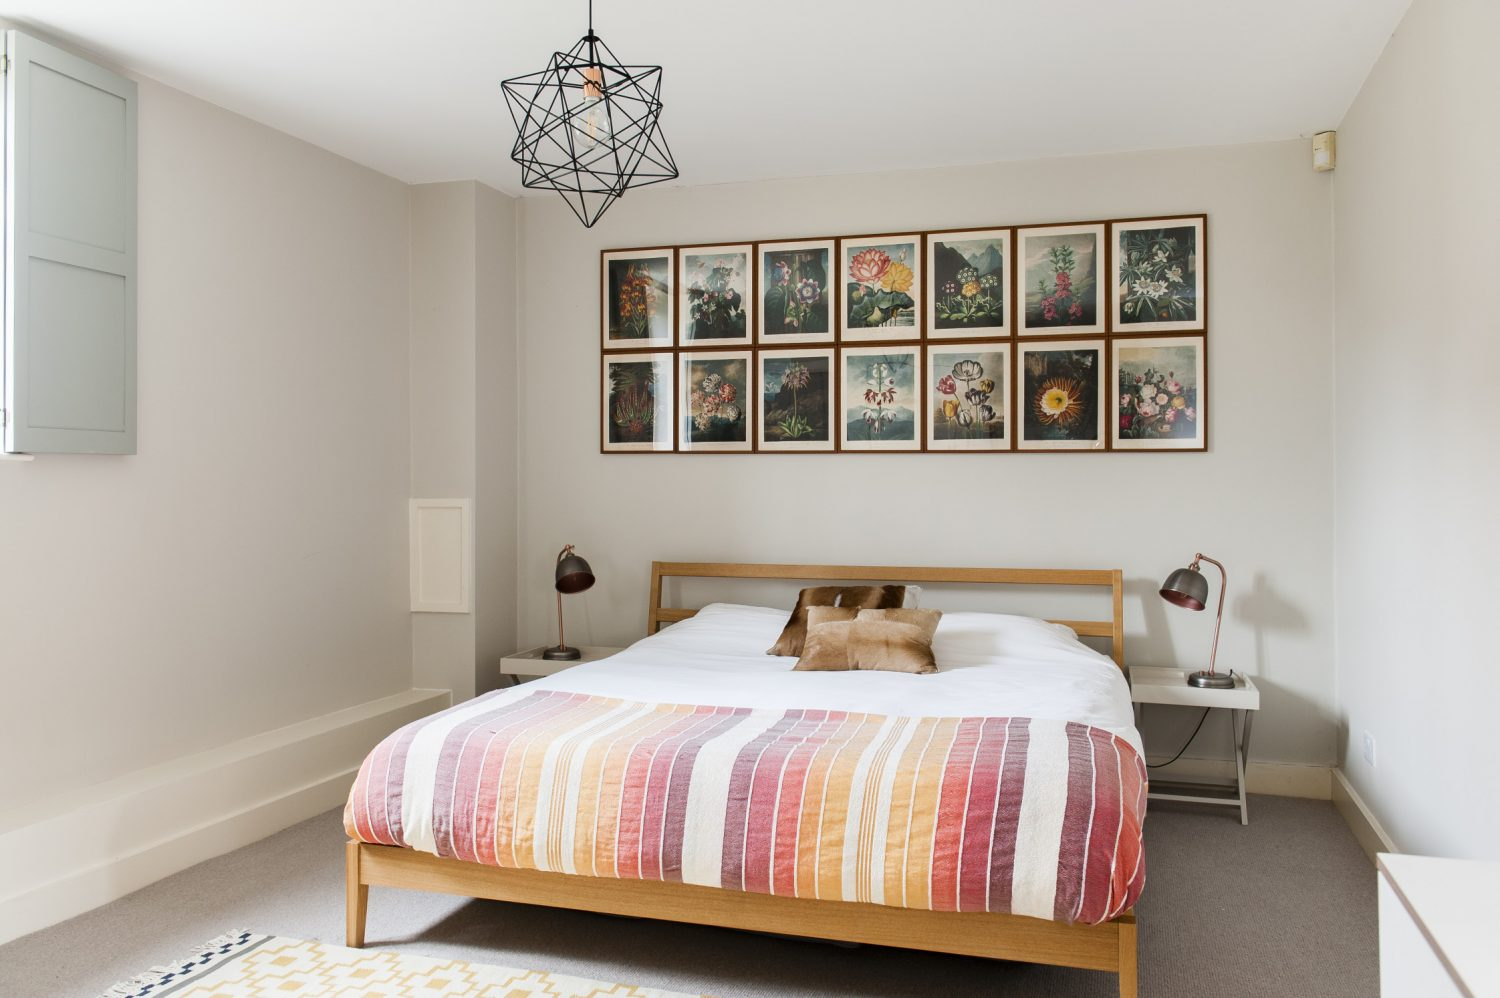 Another door from the dining area leads through to a generously sized bedroom, painted in Farrow & Ball Skimming Stone. A striking arrangement of framed flower prints hang over the headboard, taken from a book called the The Temple of Flora by a botanist Robert John Thornton